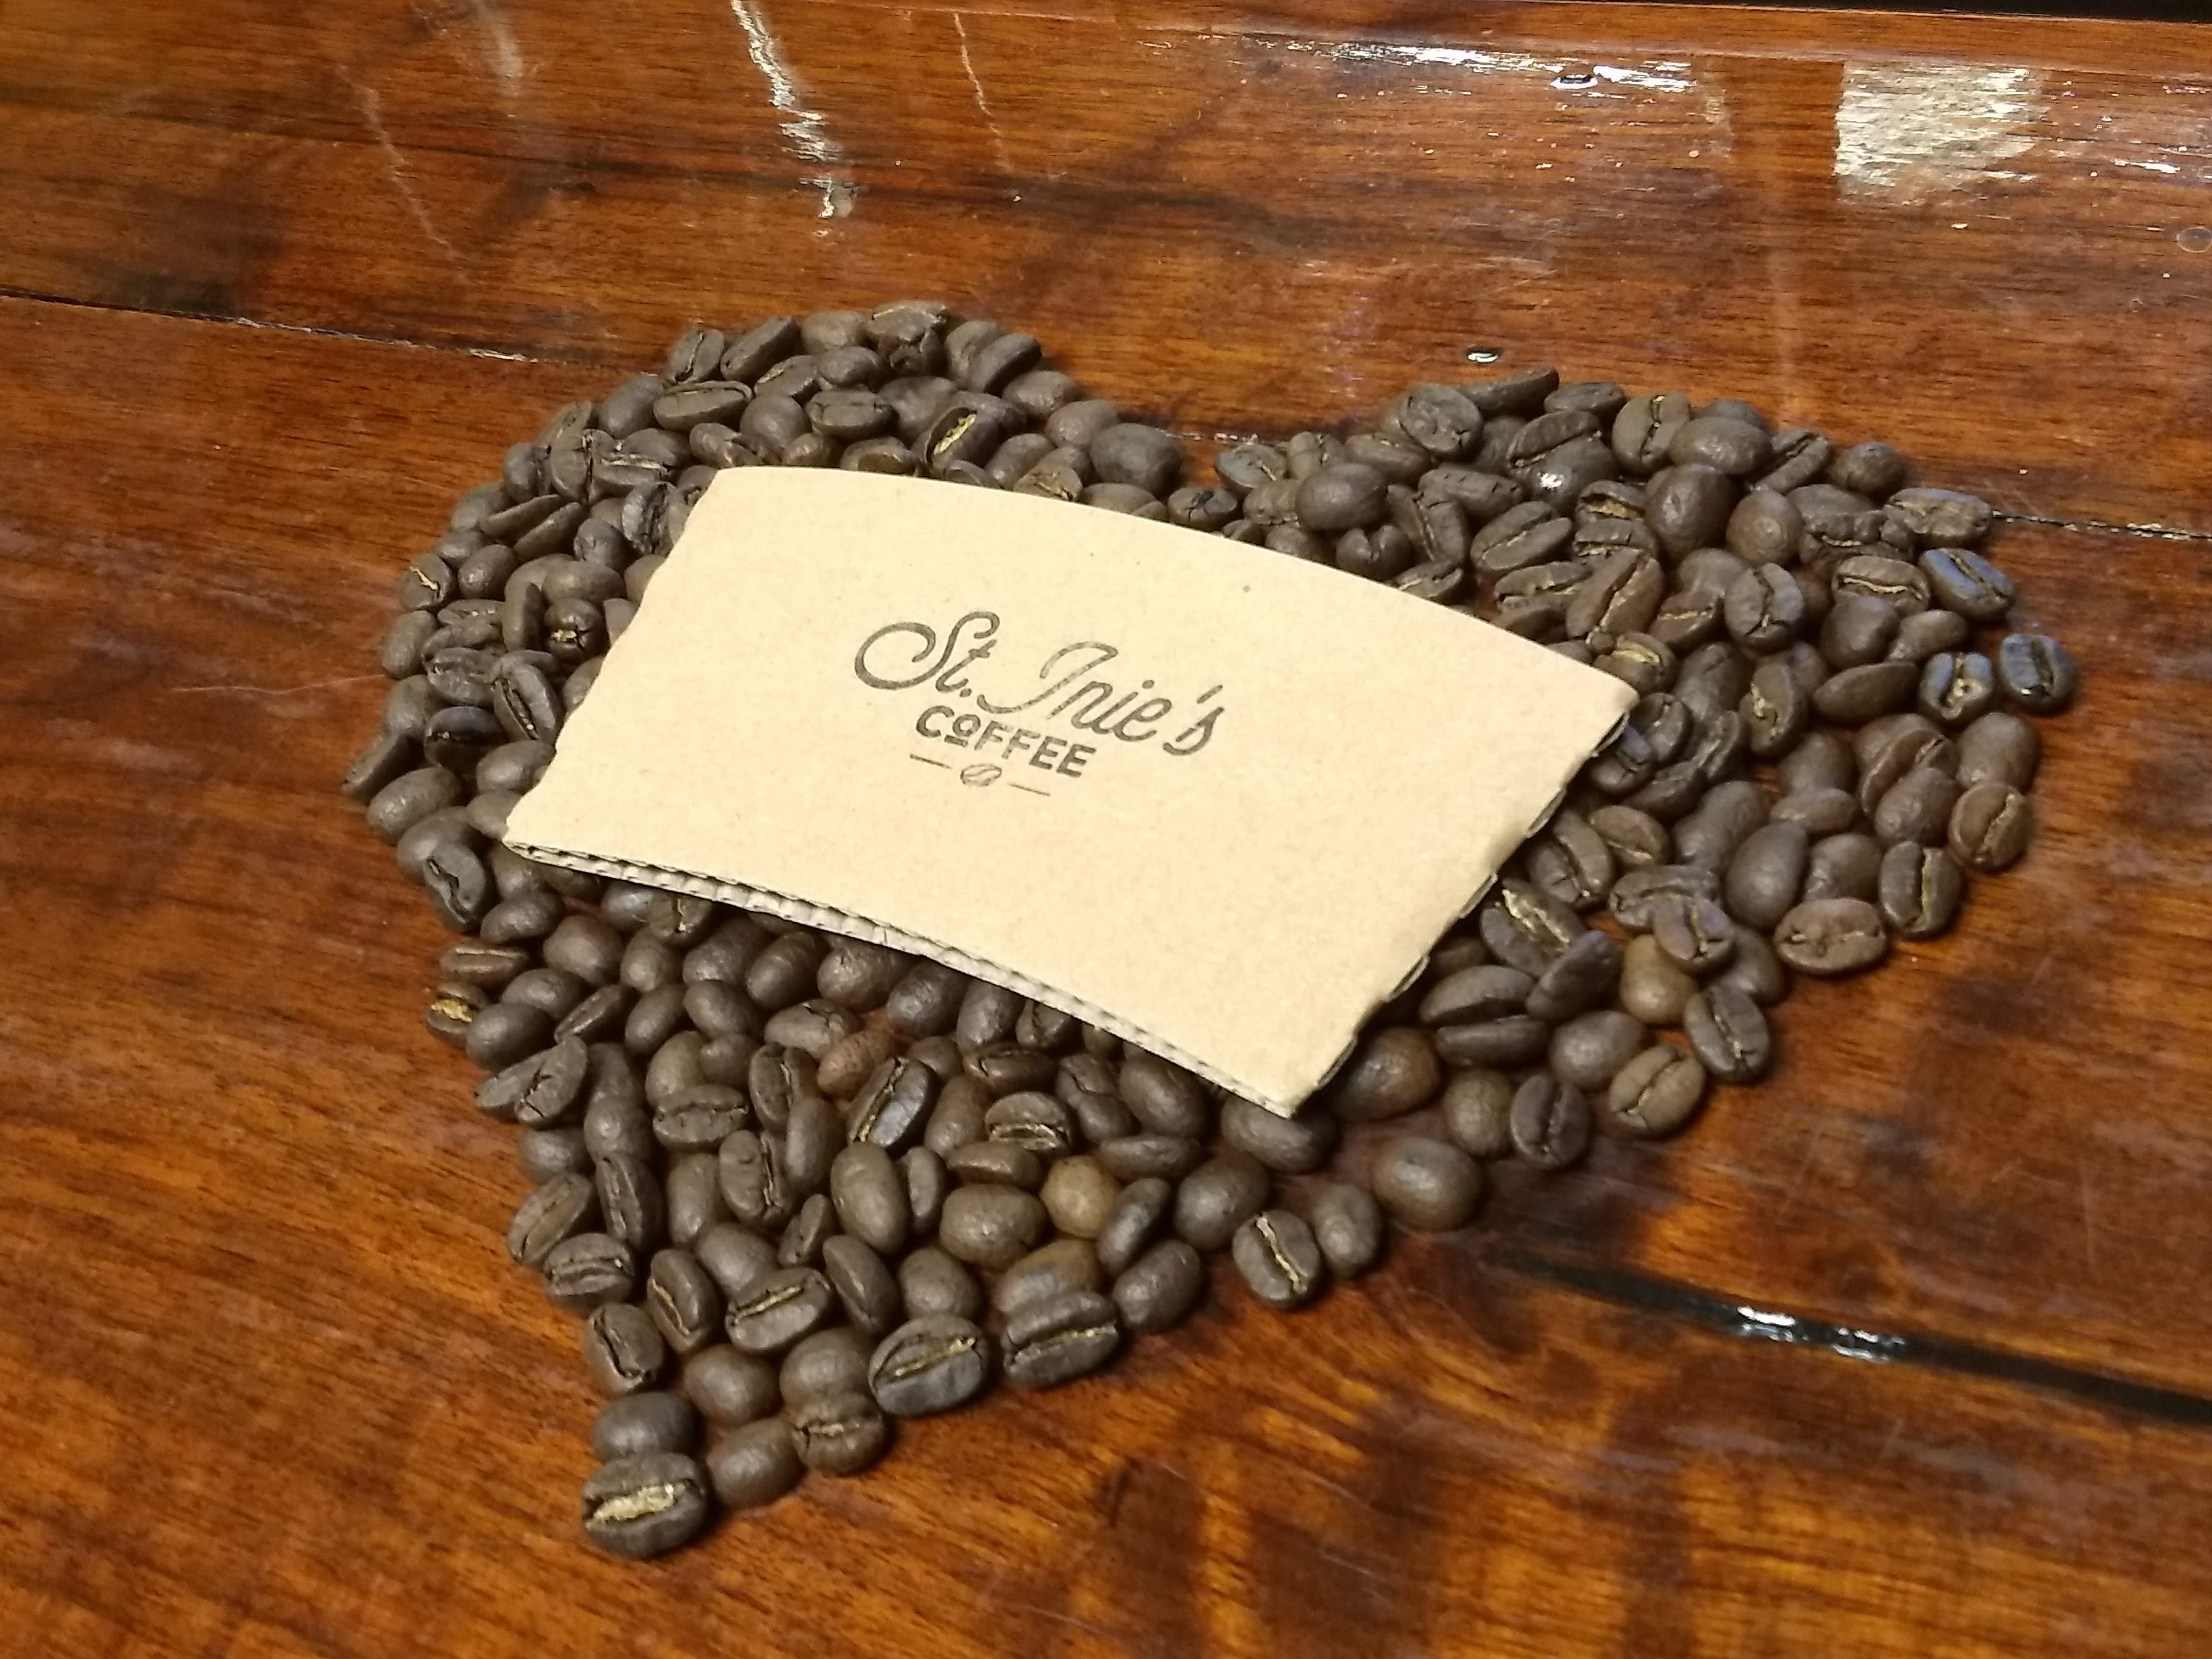 St. Inie's Coffee beans in the shape of a heart.